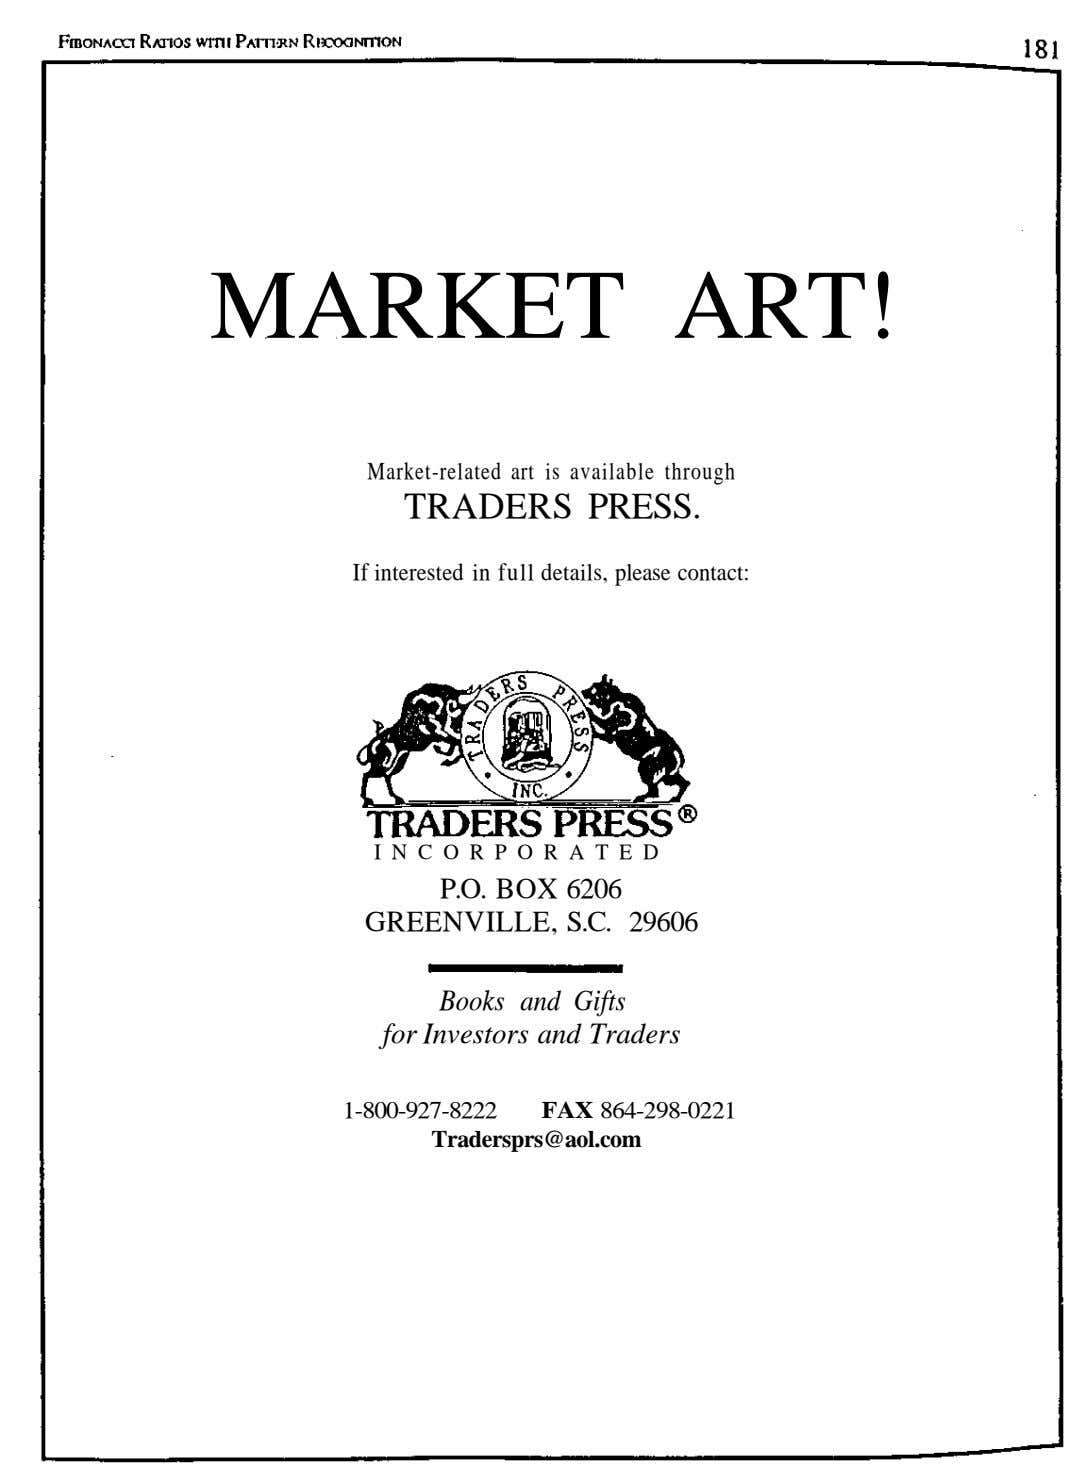 MARKET ART! Market-related art is available through TRADERS PRESS. If interested in full details, please